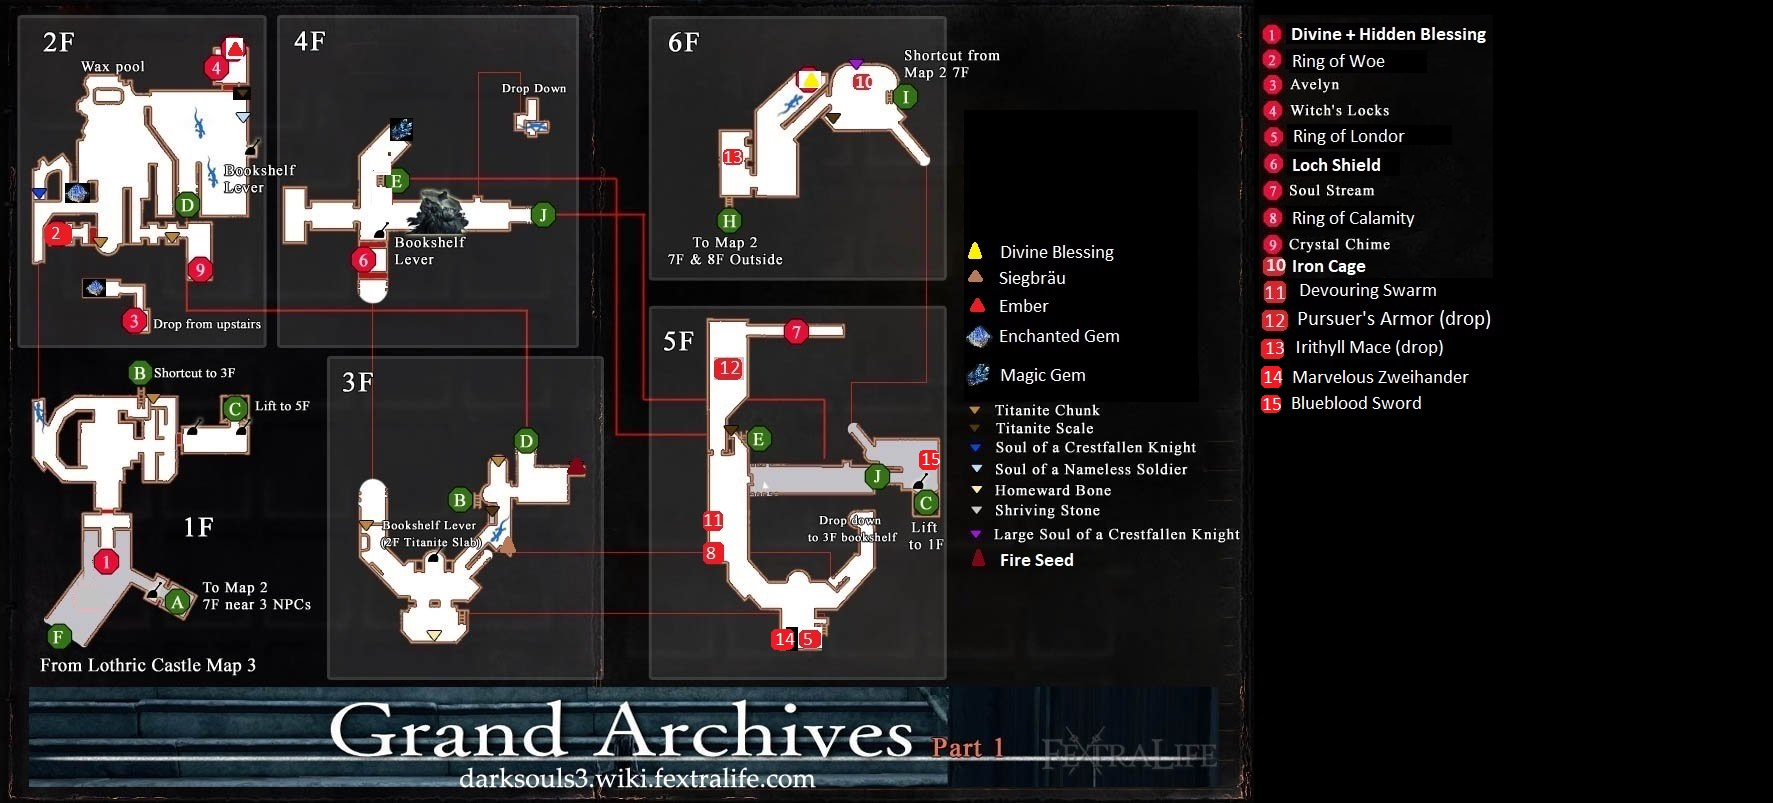 grand_archives_map1.jpg